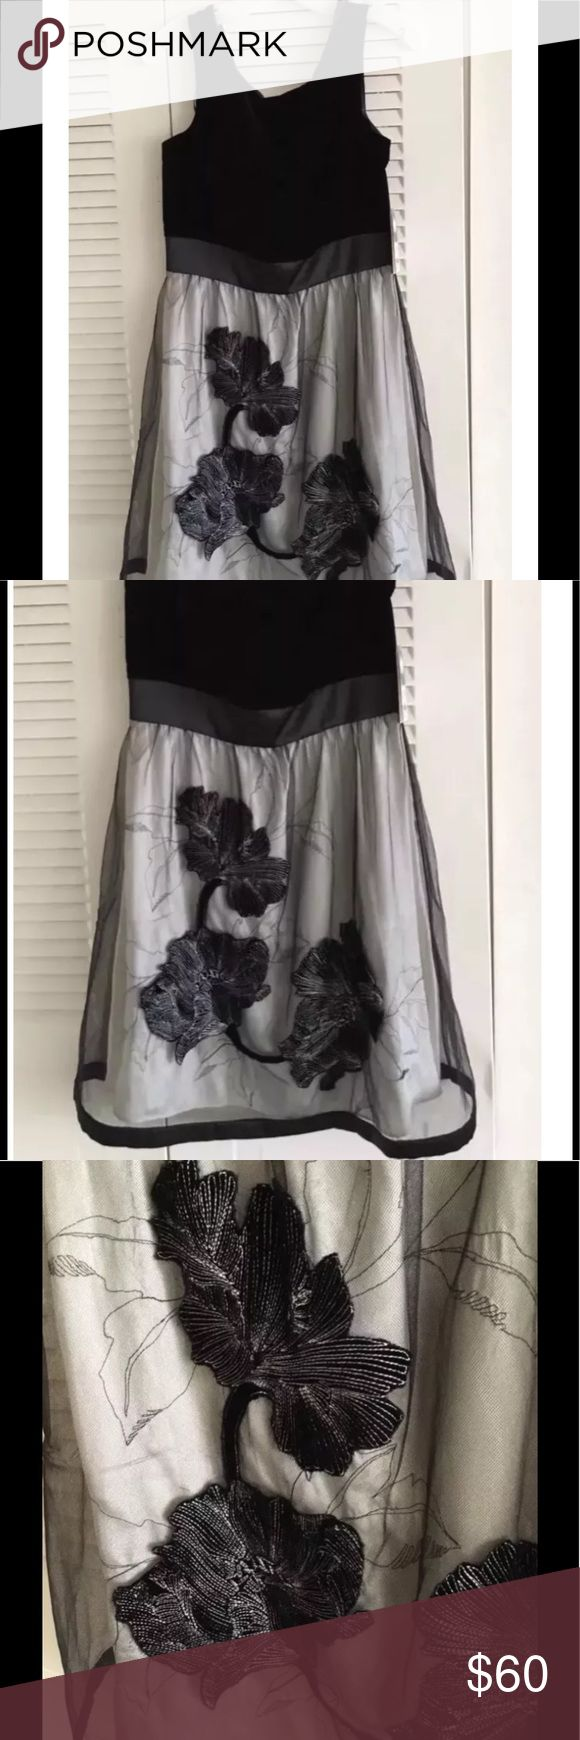 Donna Ricco dress size 8 This is a beautiful and new with tags Donna Ricco dress. It is size 8. Simple and beautiful. The upper part is all black velvet. It retails in stores for $148. Check the images and feel free to ask questions or leave comments ❤️ Donna Ricco Dresses Midi